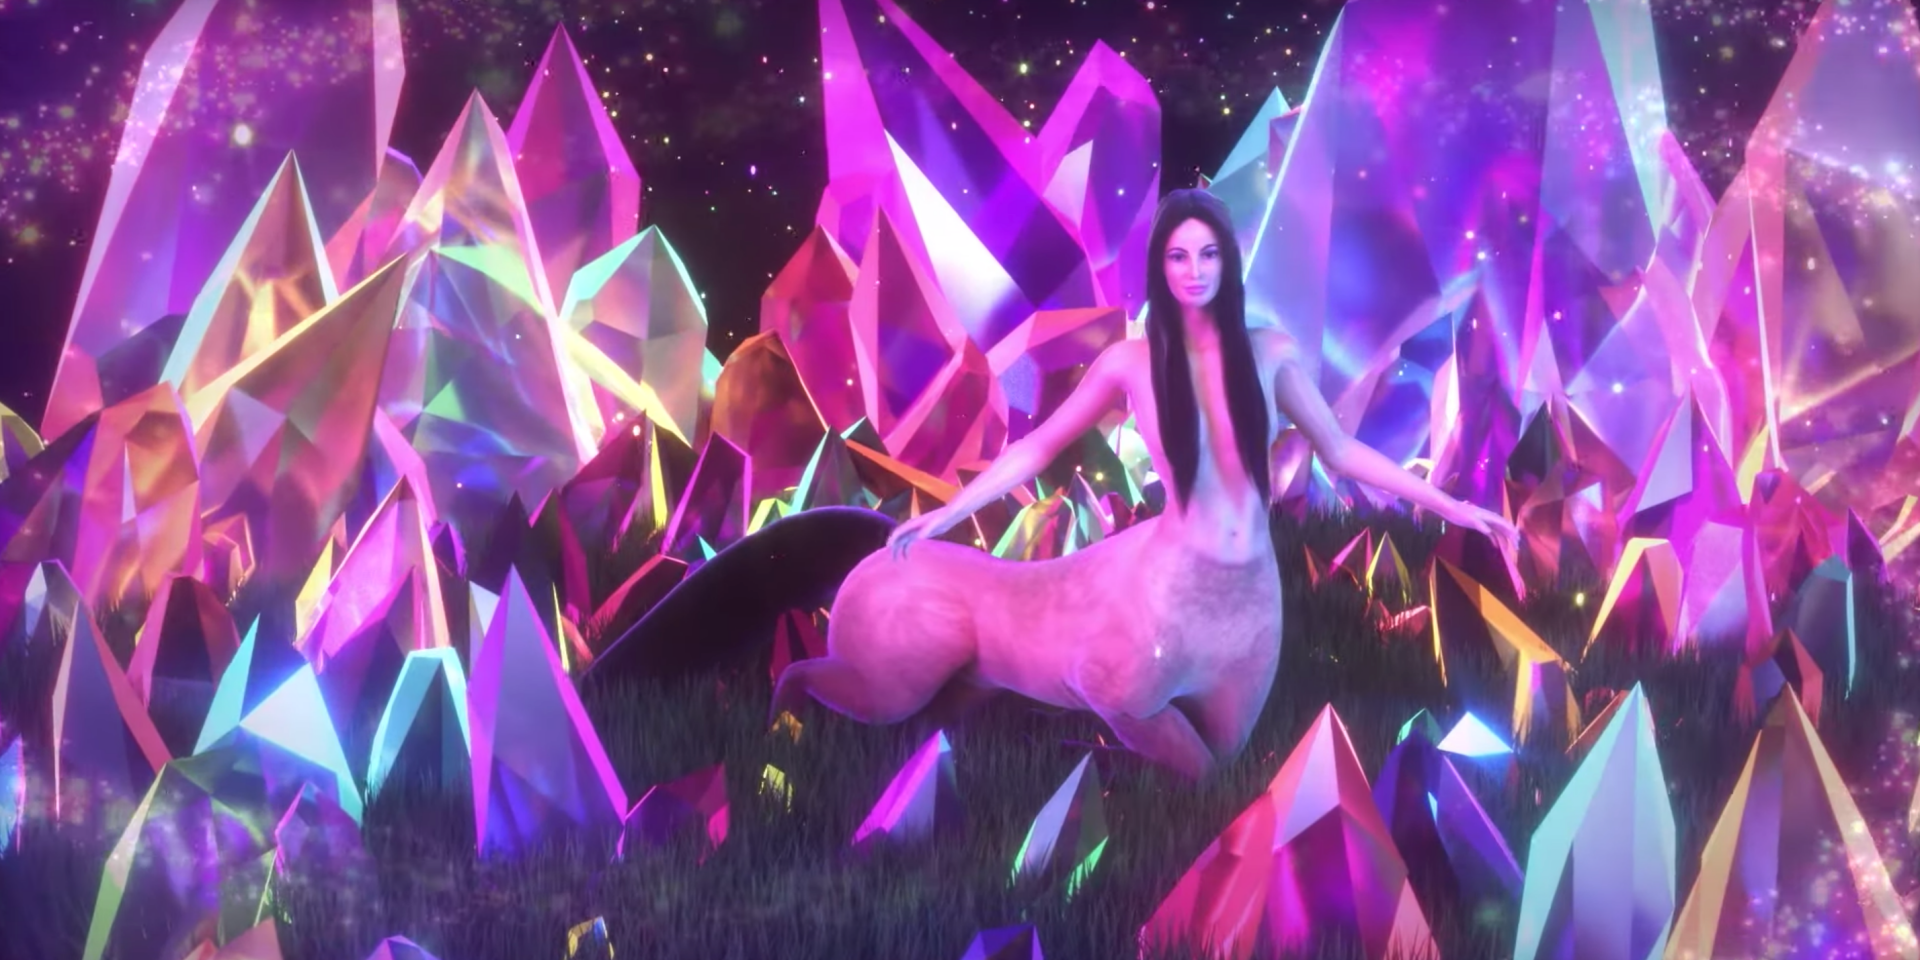 Kacey Musgraves is a beautiful centaur in trippy new music video for 'Oh, What A World' – watch